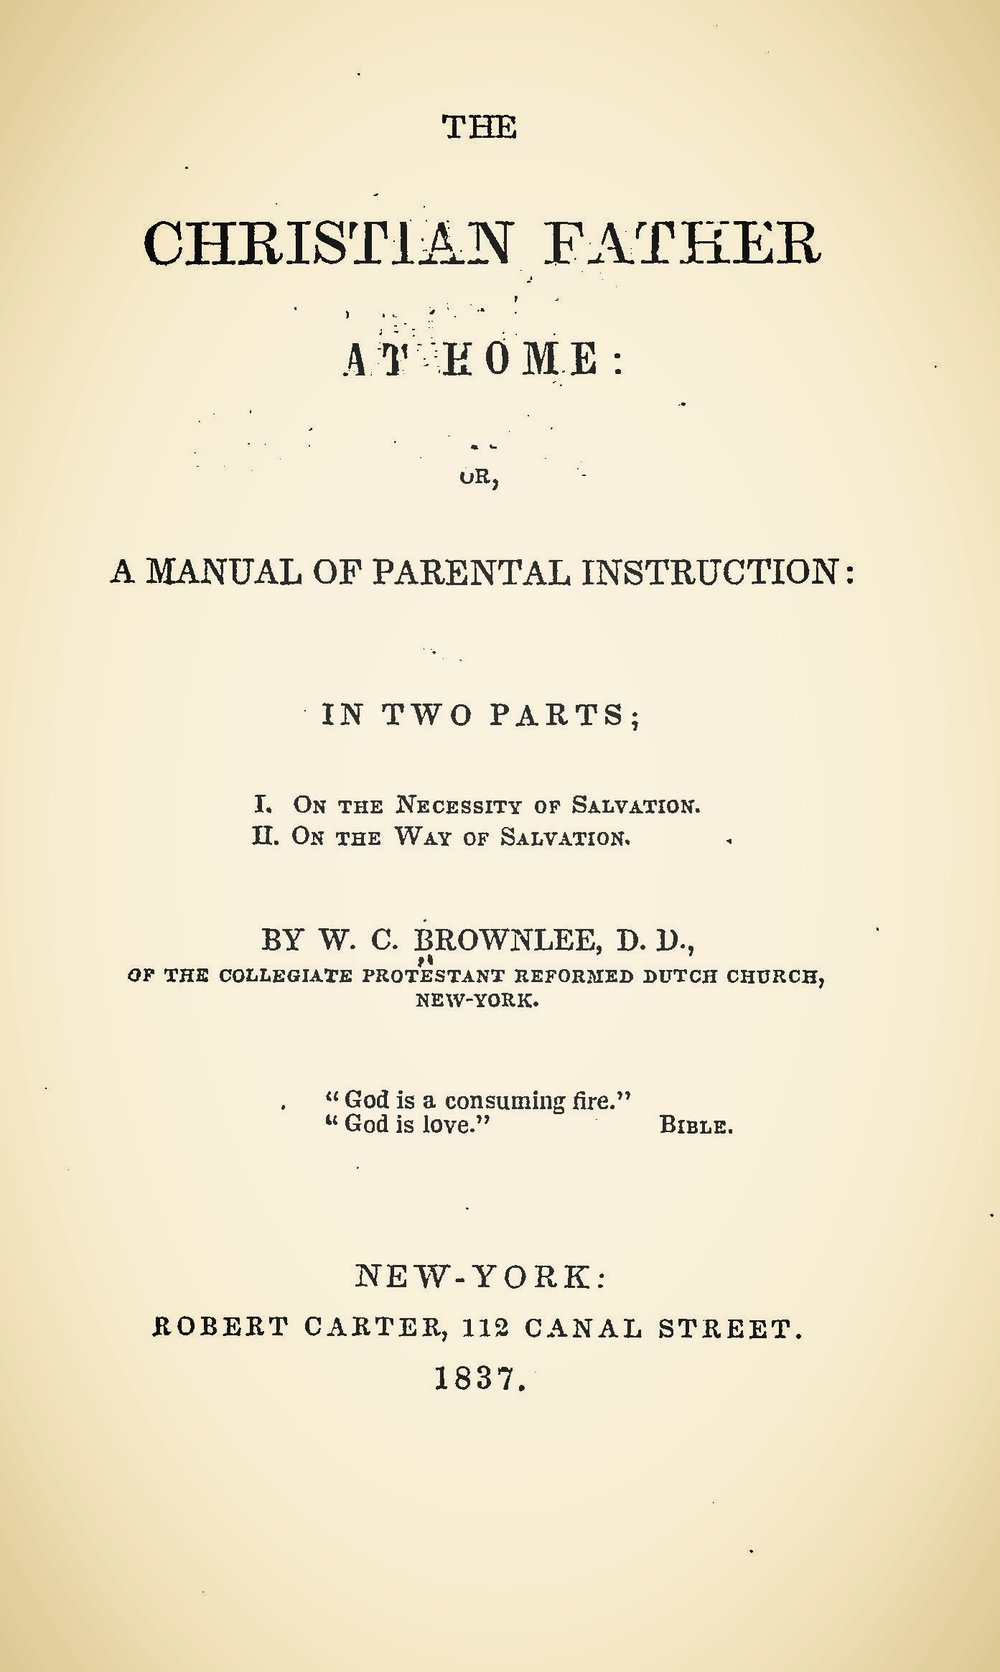 Brownlee, William Craig, The Christian Father at Home Title Page.jpg